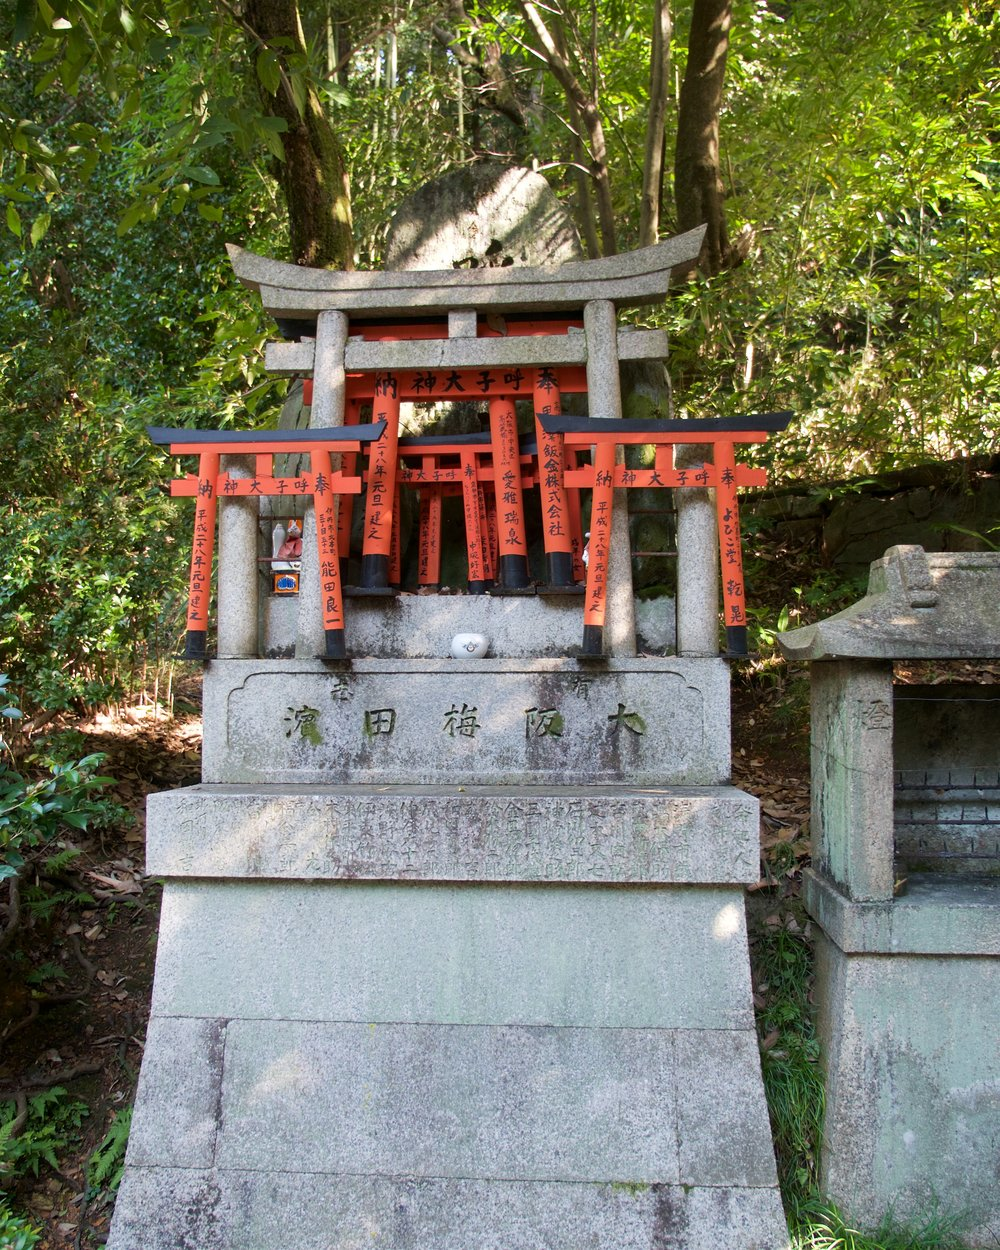 One of the several shrines up and down the mountain